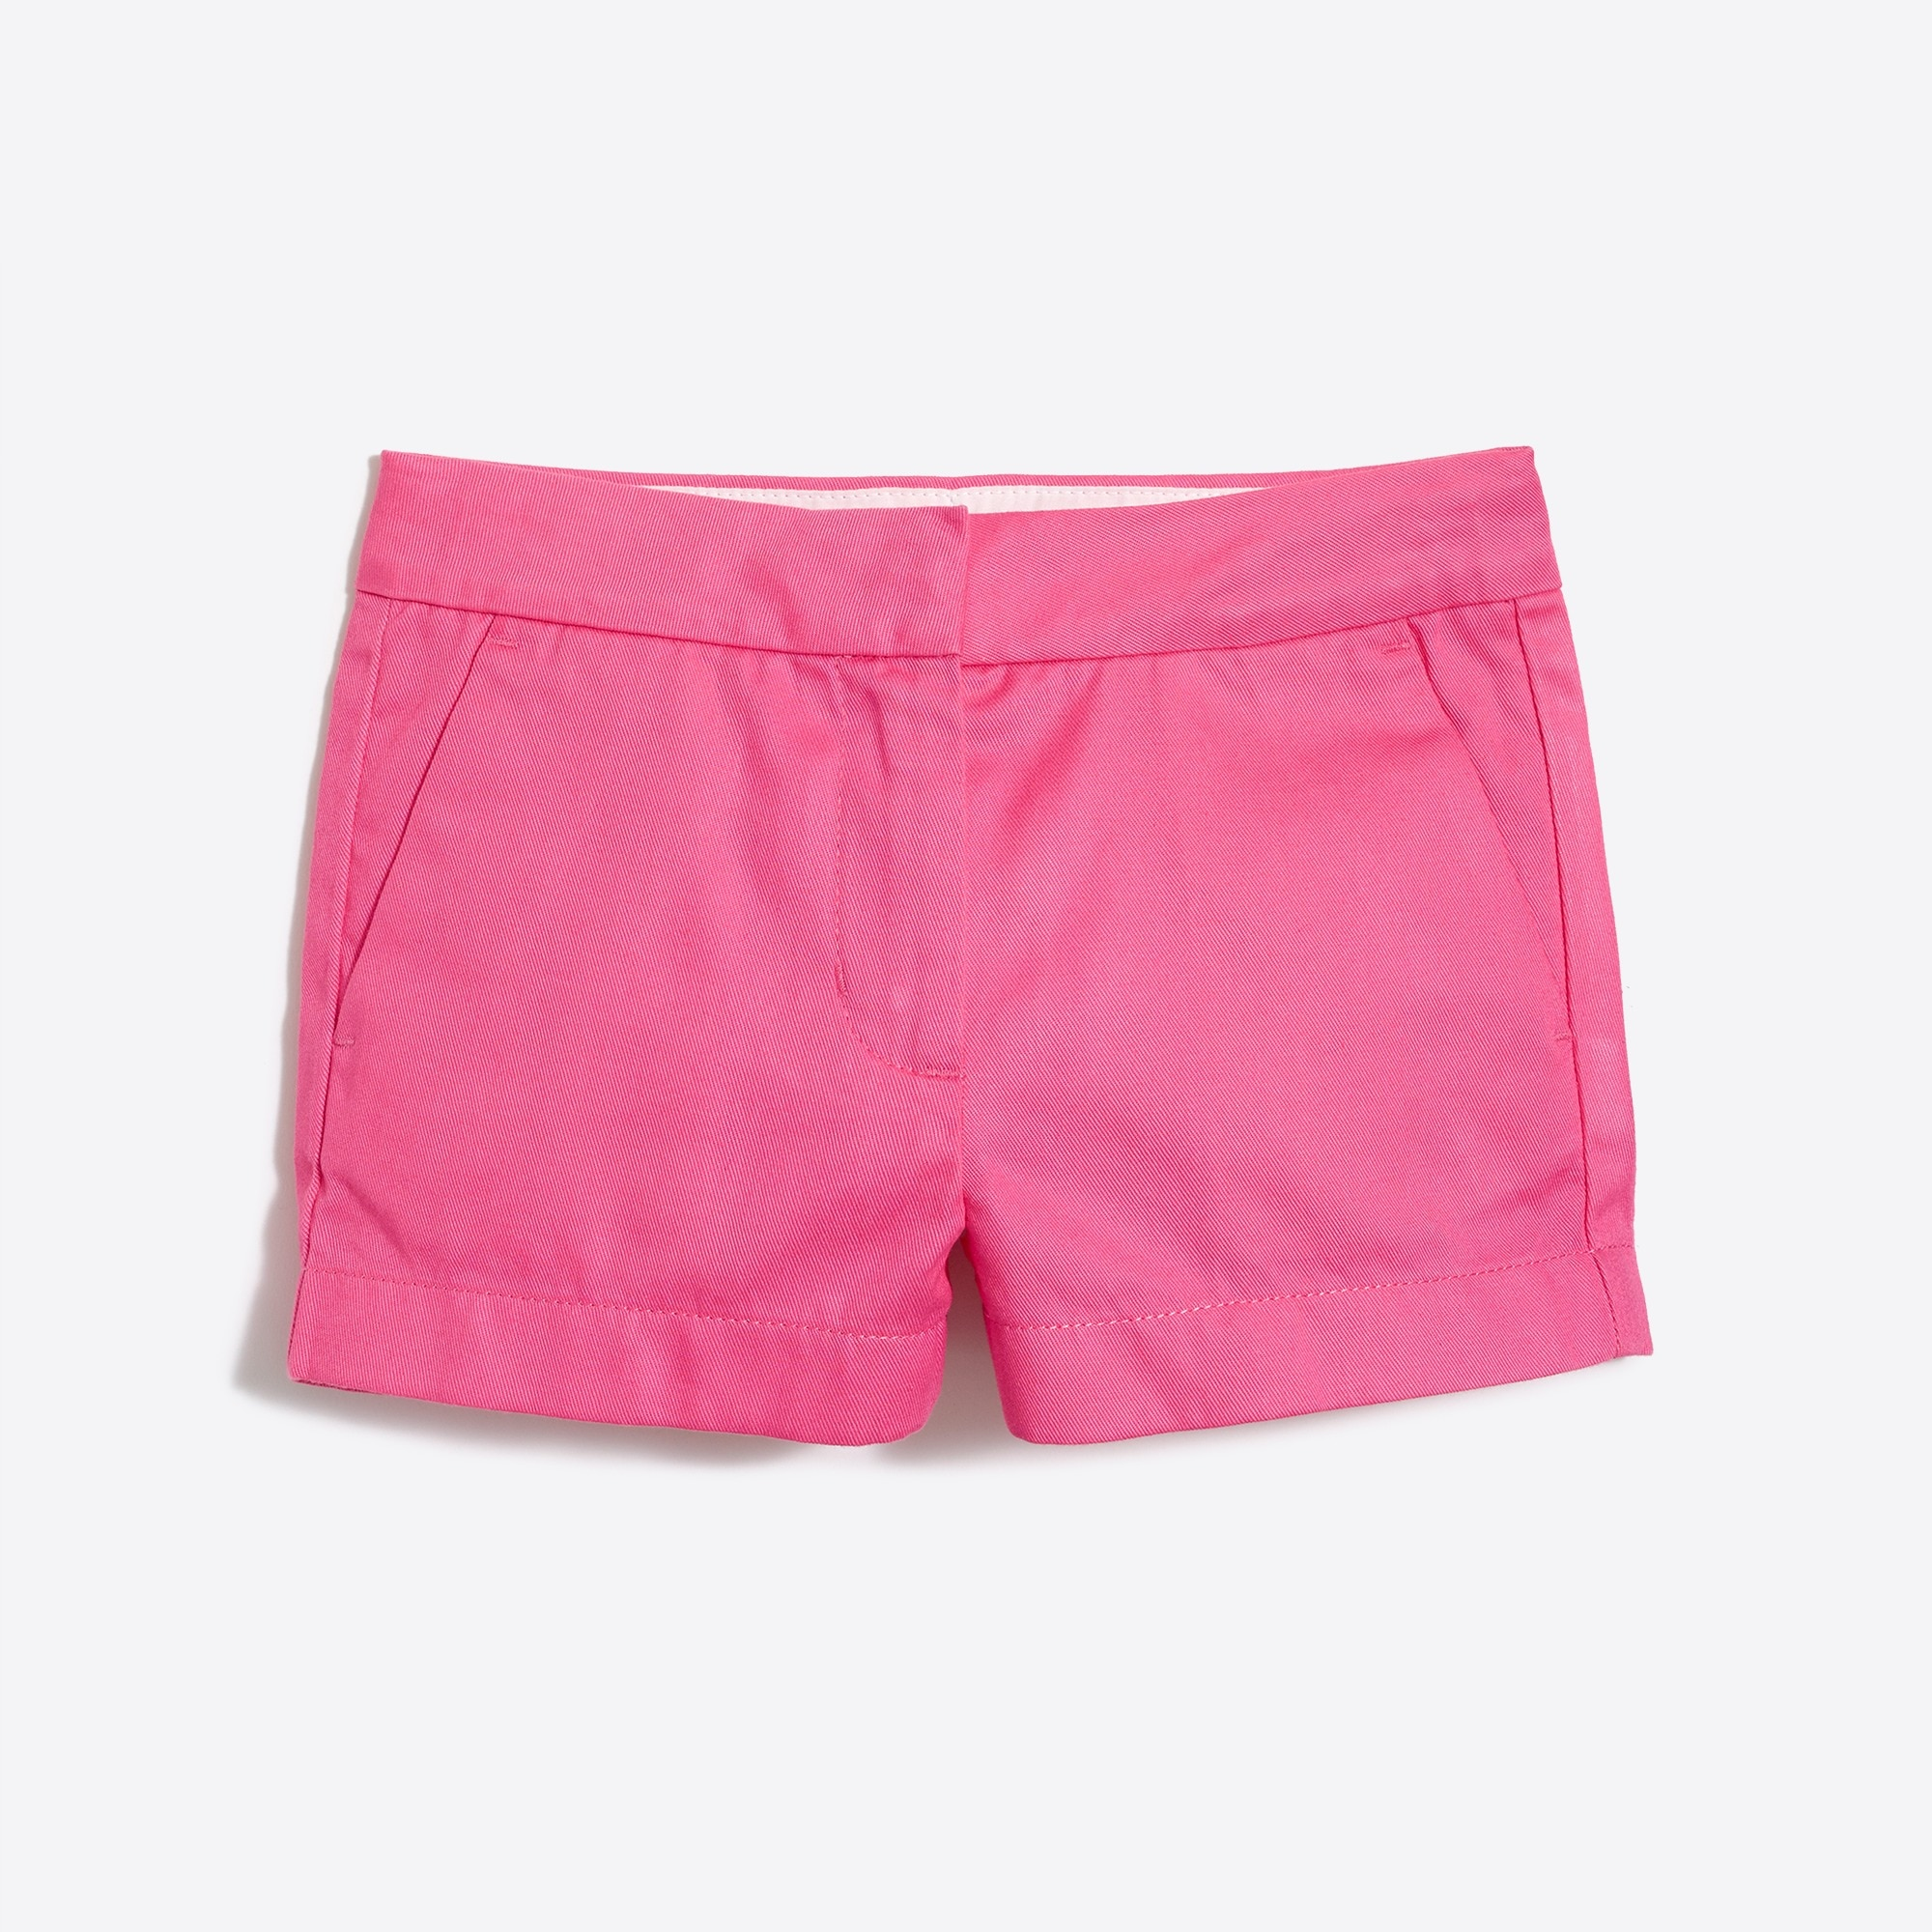 girls' chino short : factorygirls shorts